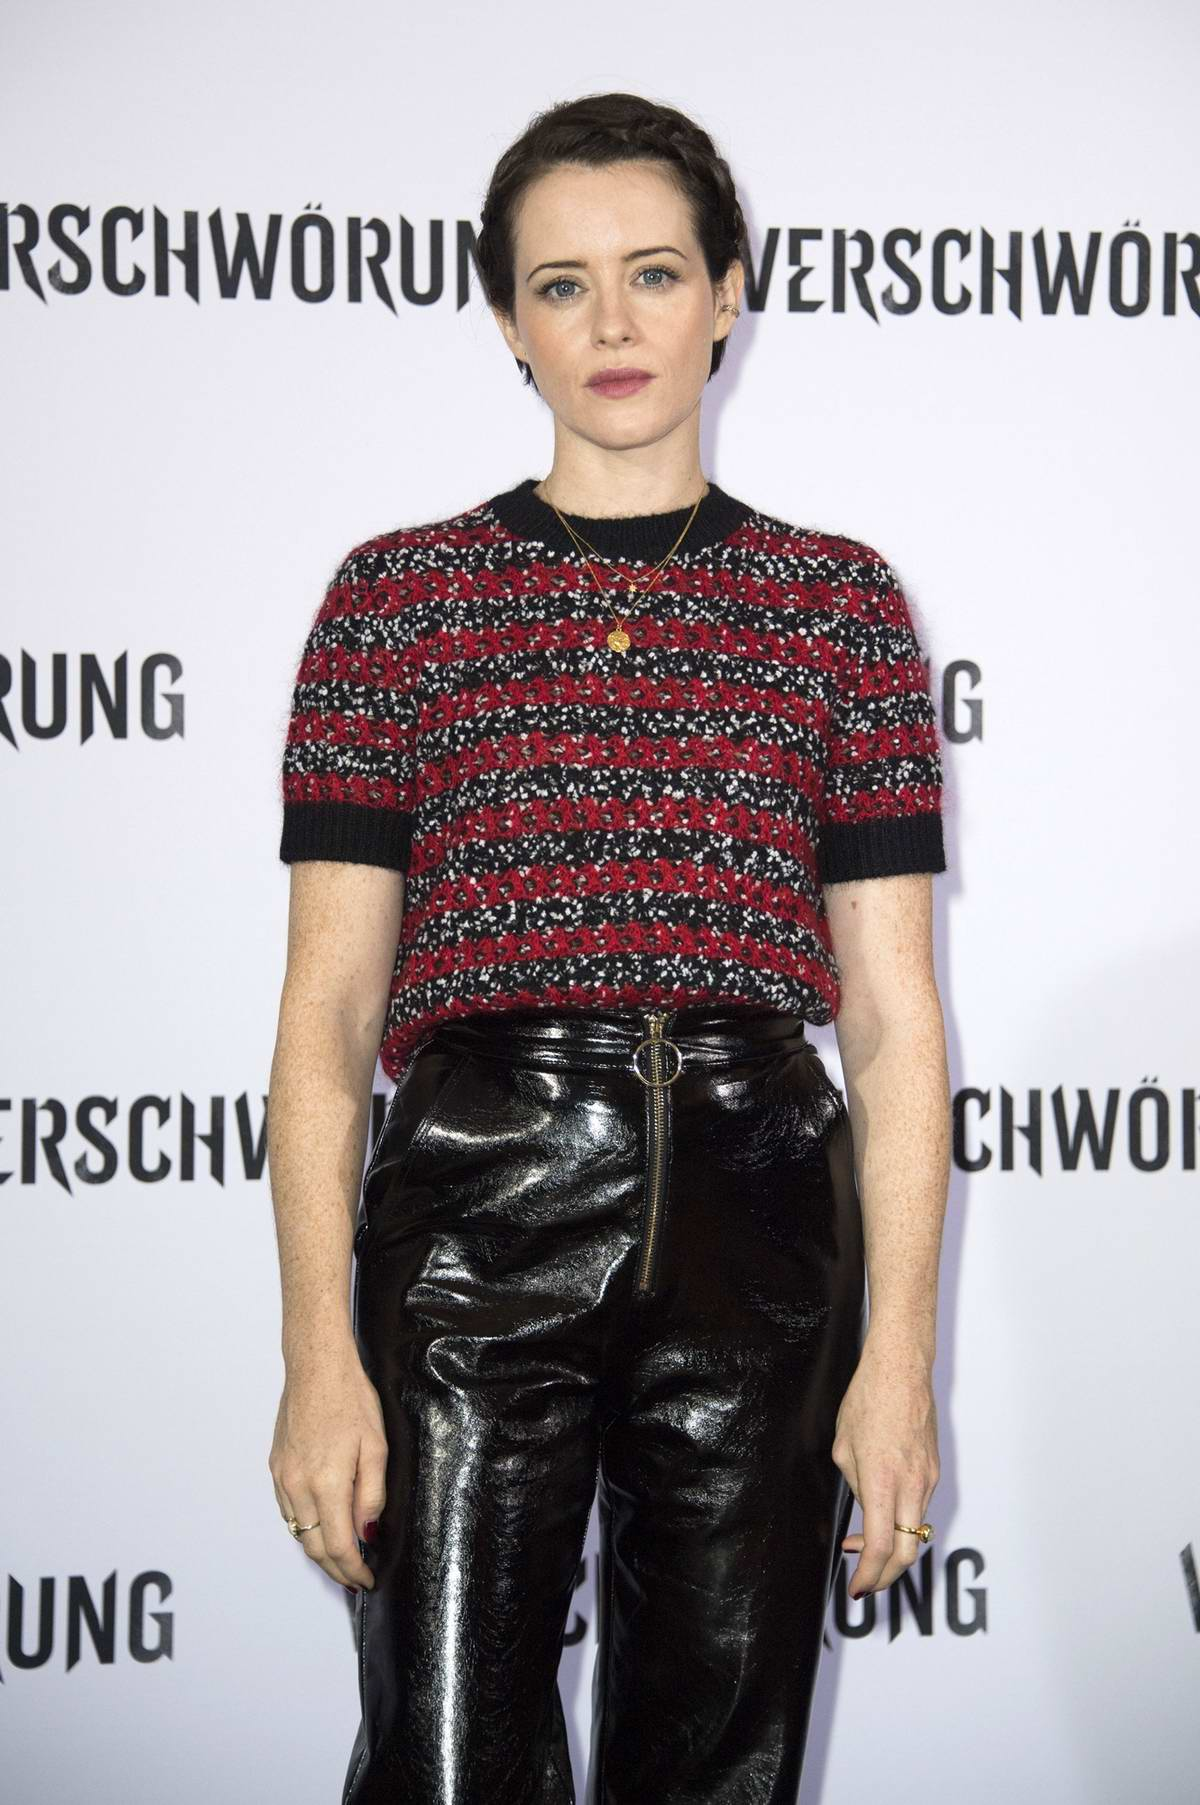 Claire Foy attends 'The Girl In The Spider's Web' photocall at the Grand Hyatt Hotel in Berlin, Germany